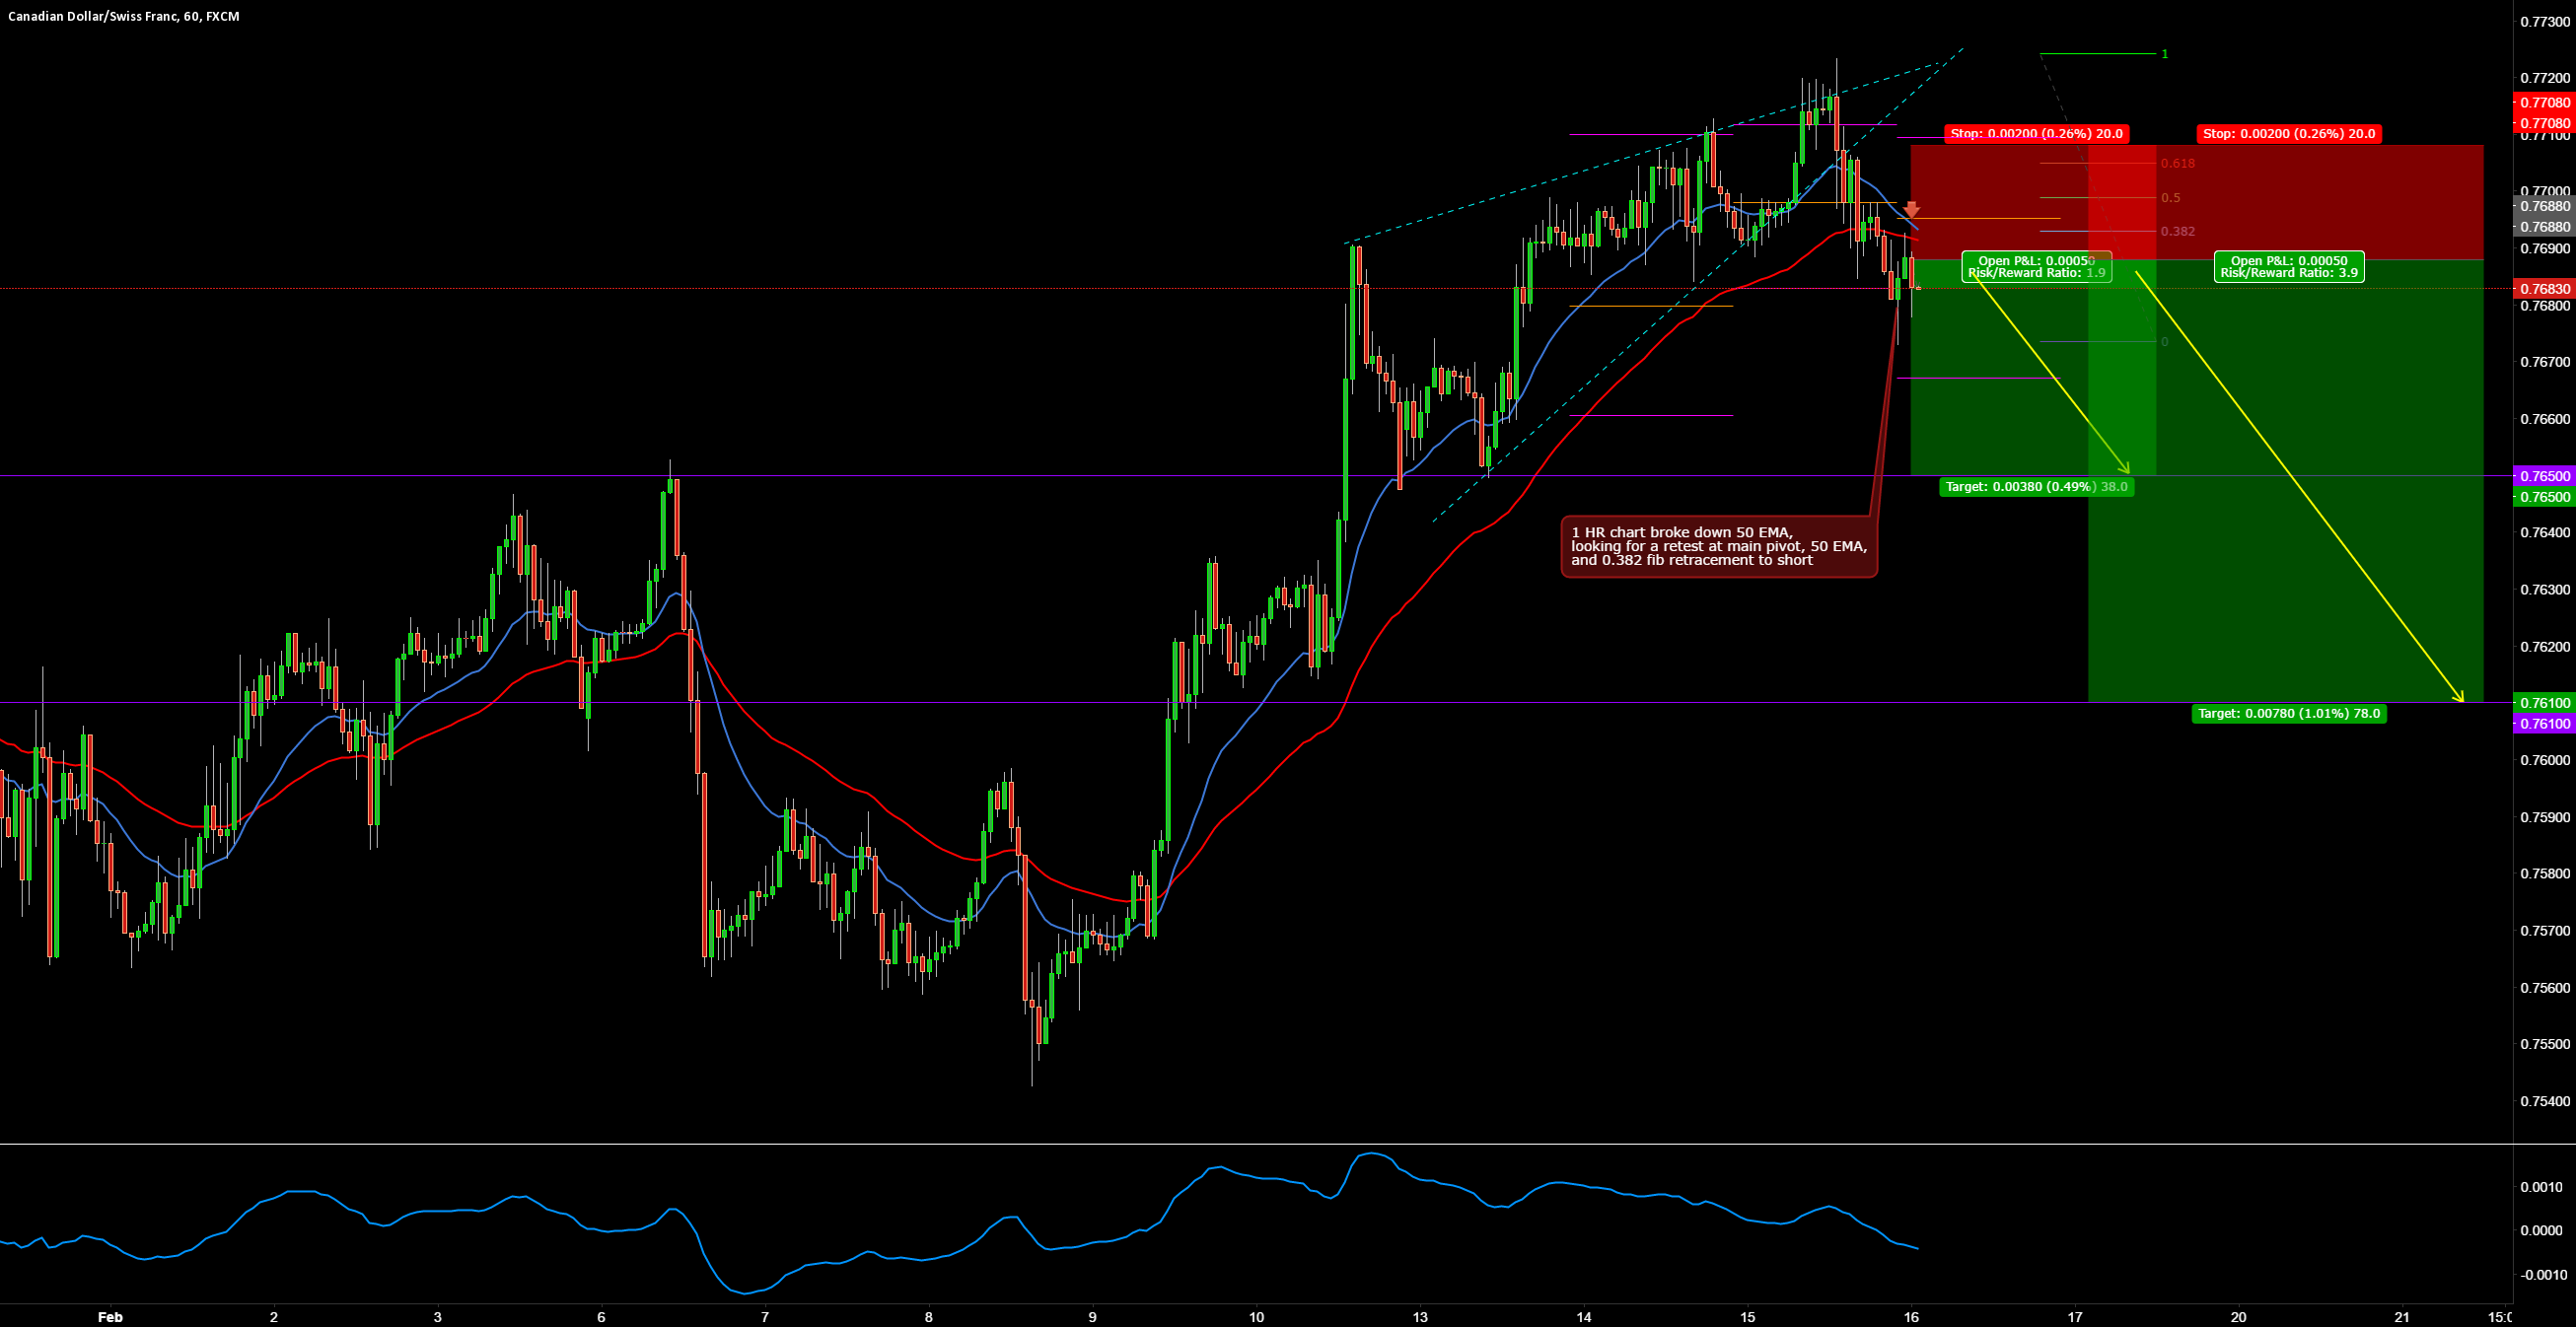 CADCHF SHORT INTRADAY BREAK OUT TRADE SETUP